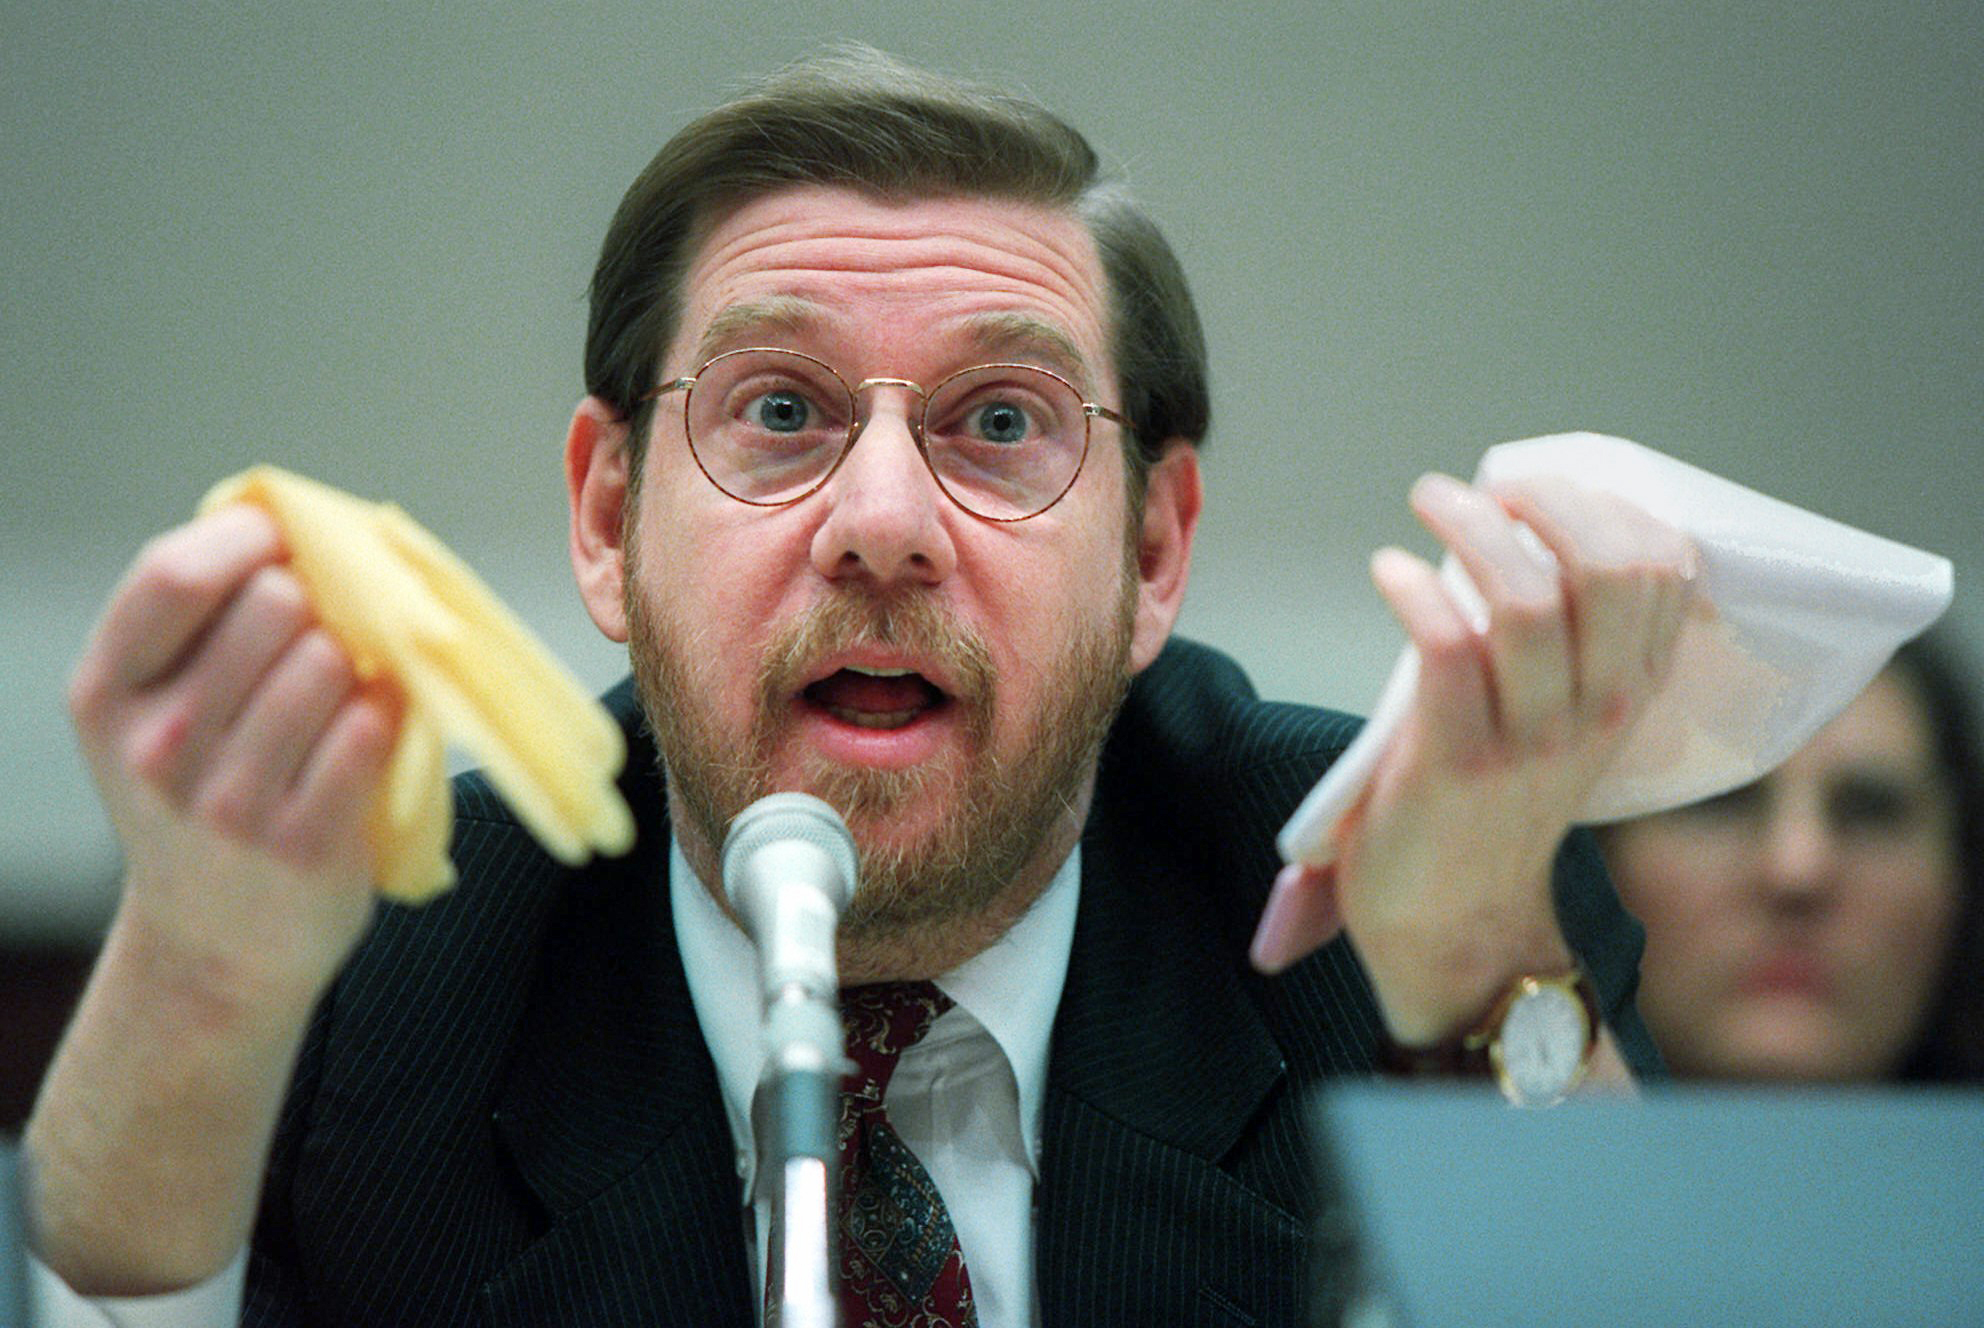 This Nov. 15, 1995 file photo shows then Food and Drug Administration (FDA) Administrator David Kessler testifying on Capitol Hill in Washington.